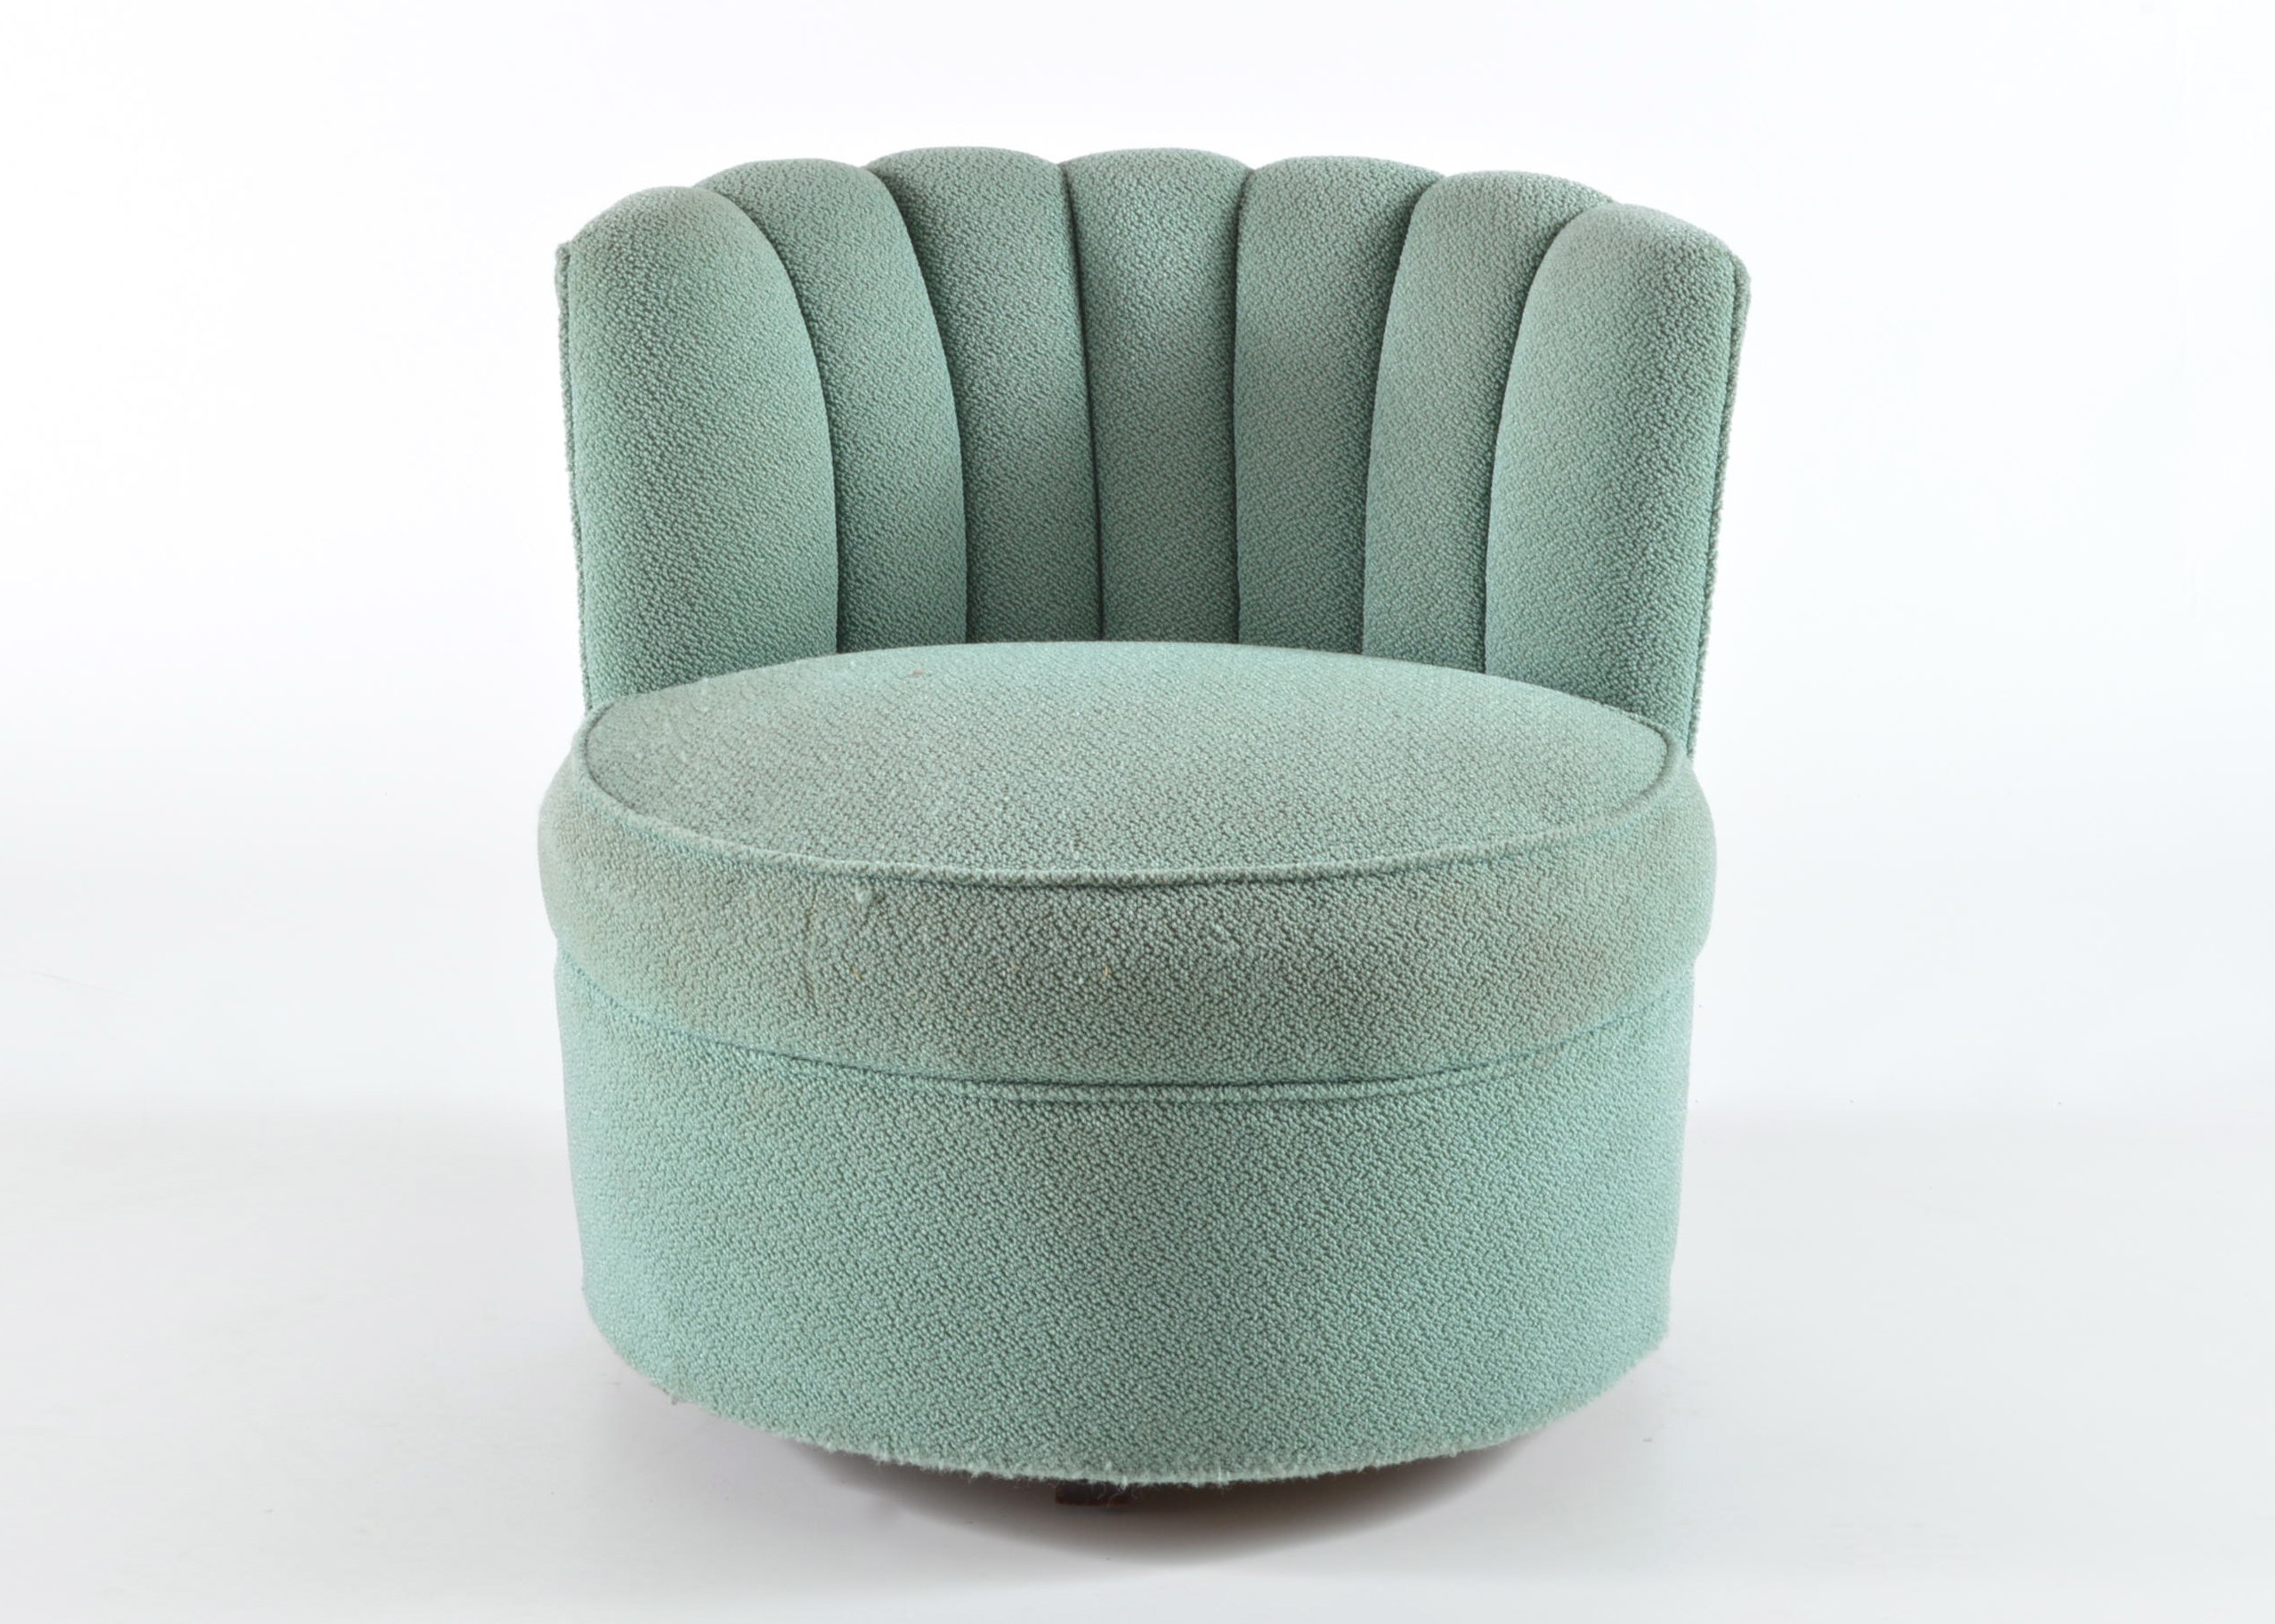 Clamshell Shaped Upholstered Chair ...